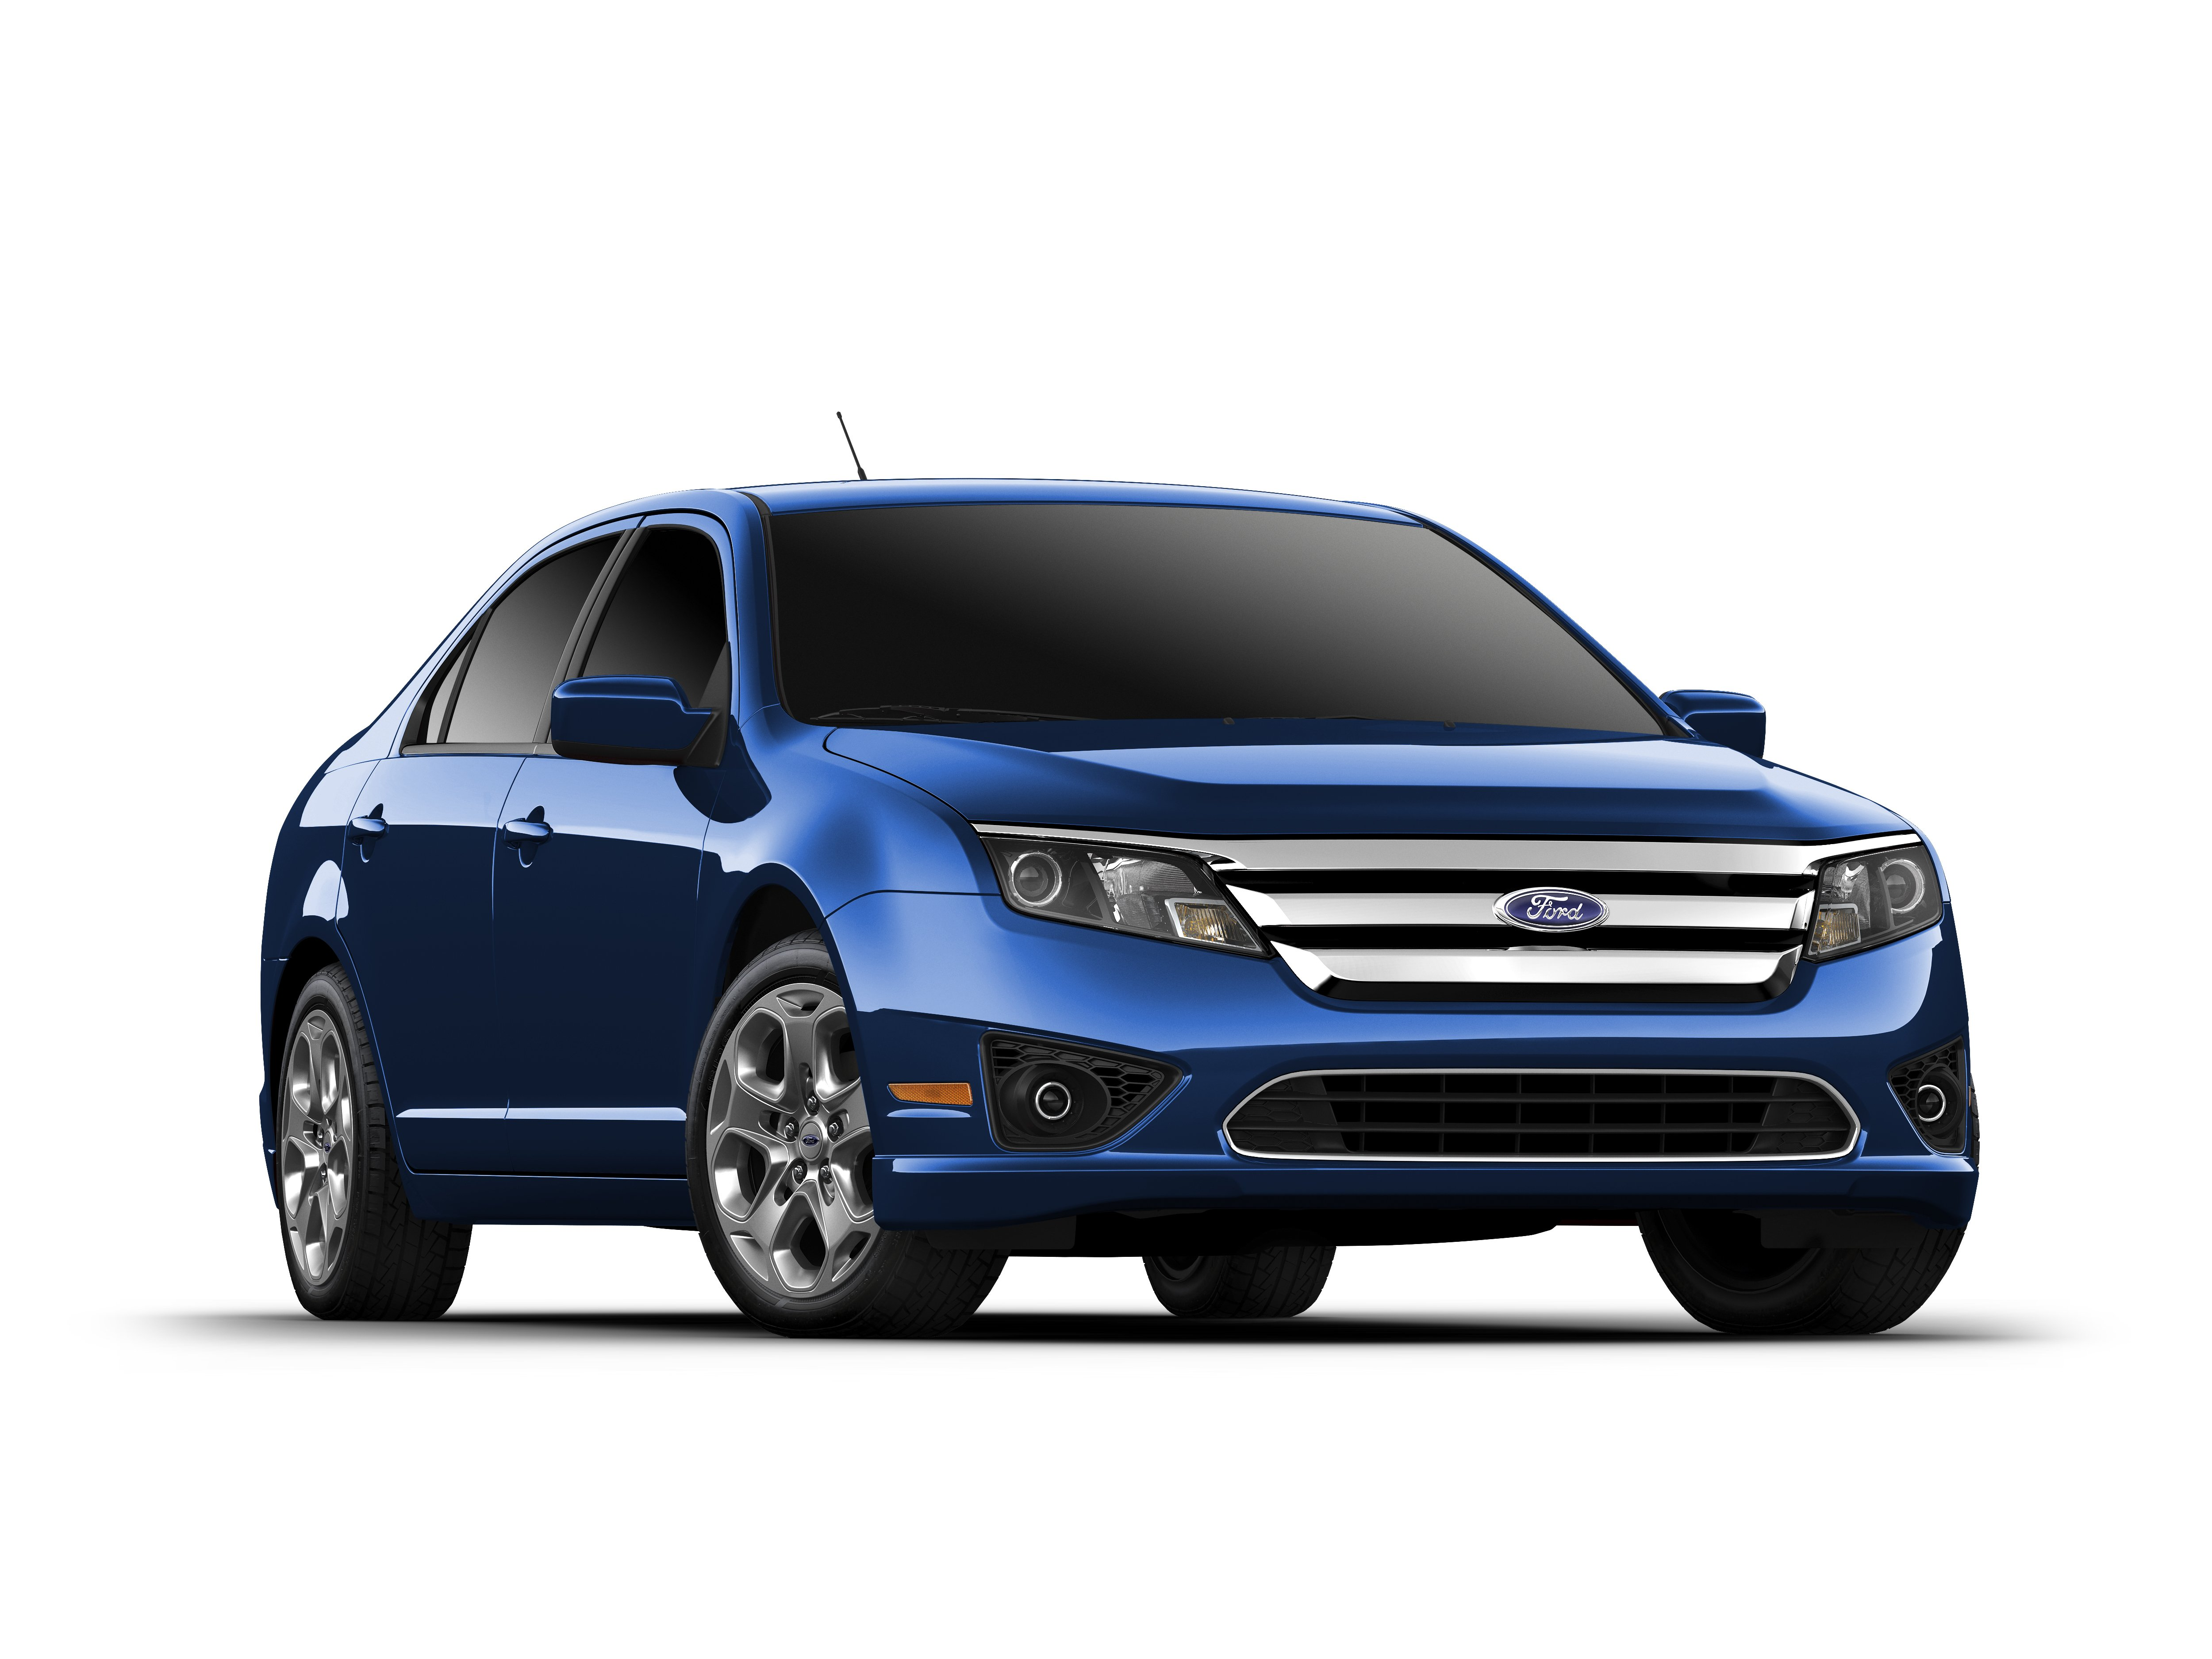 2012 Ford Fusion #1